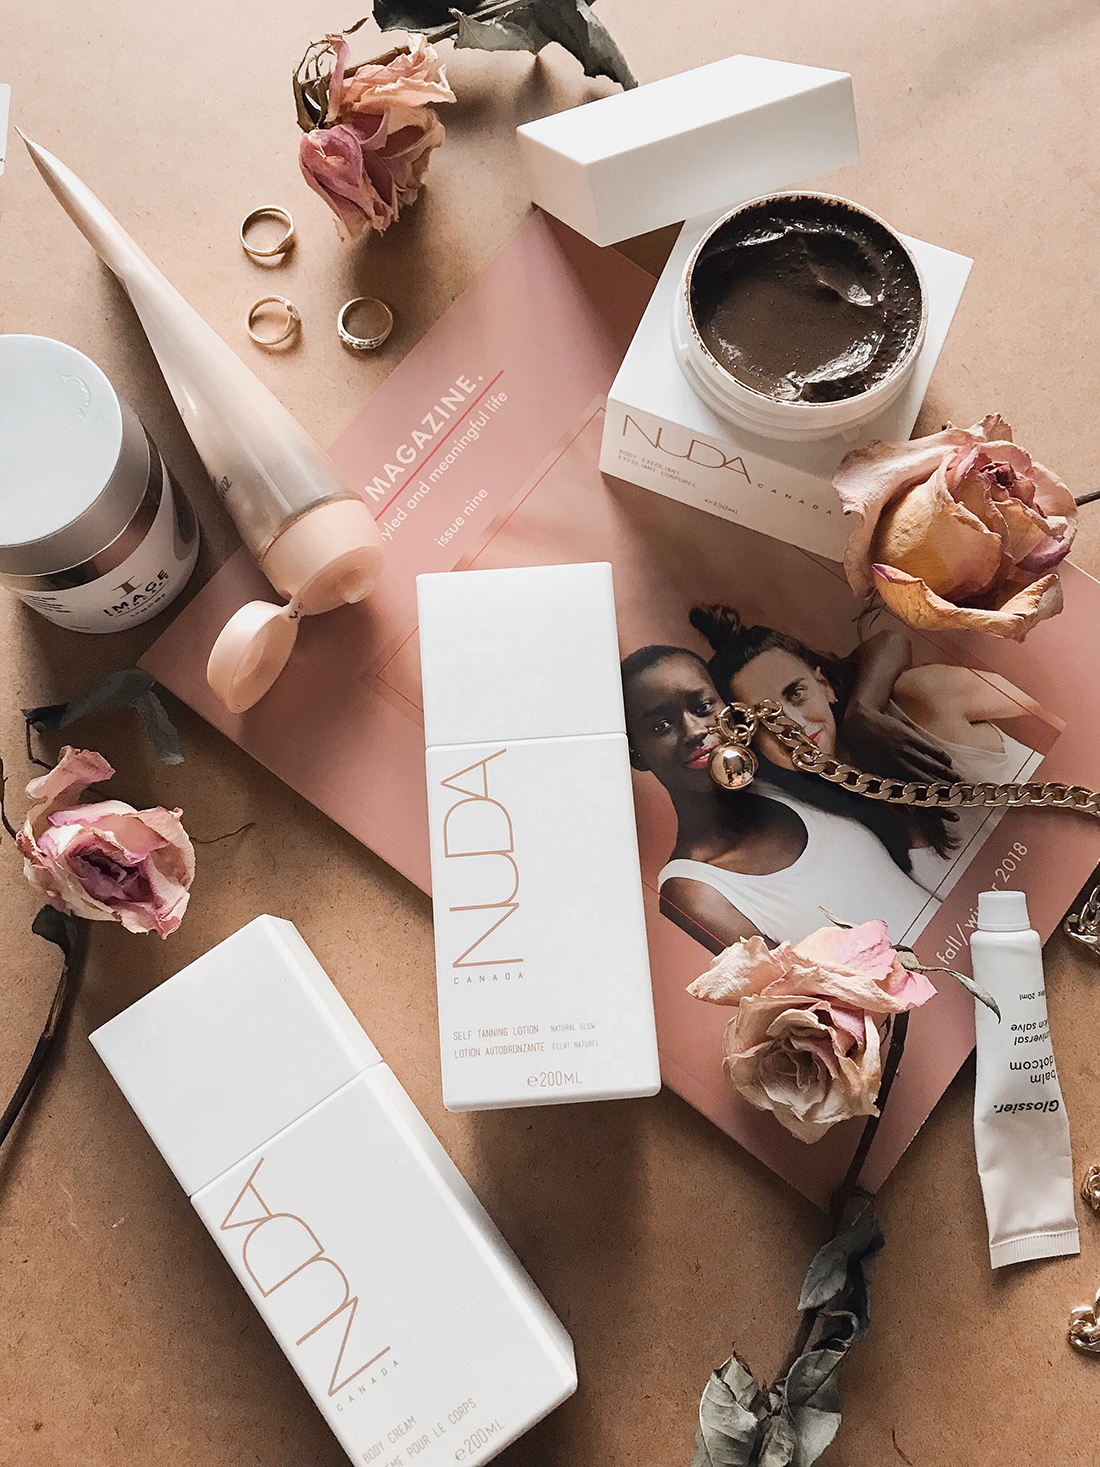 Try This: NUDA Canada